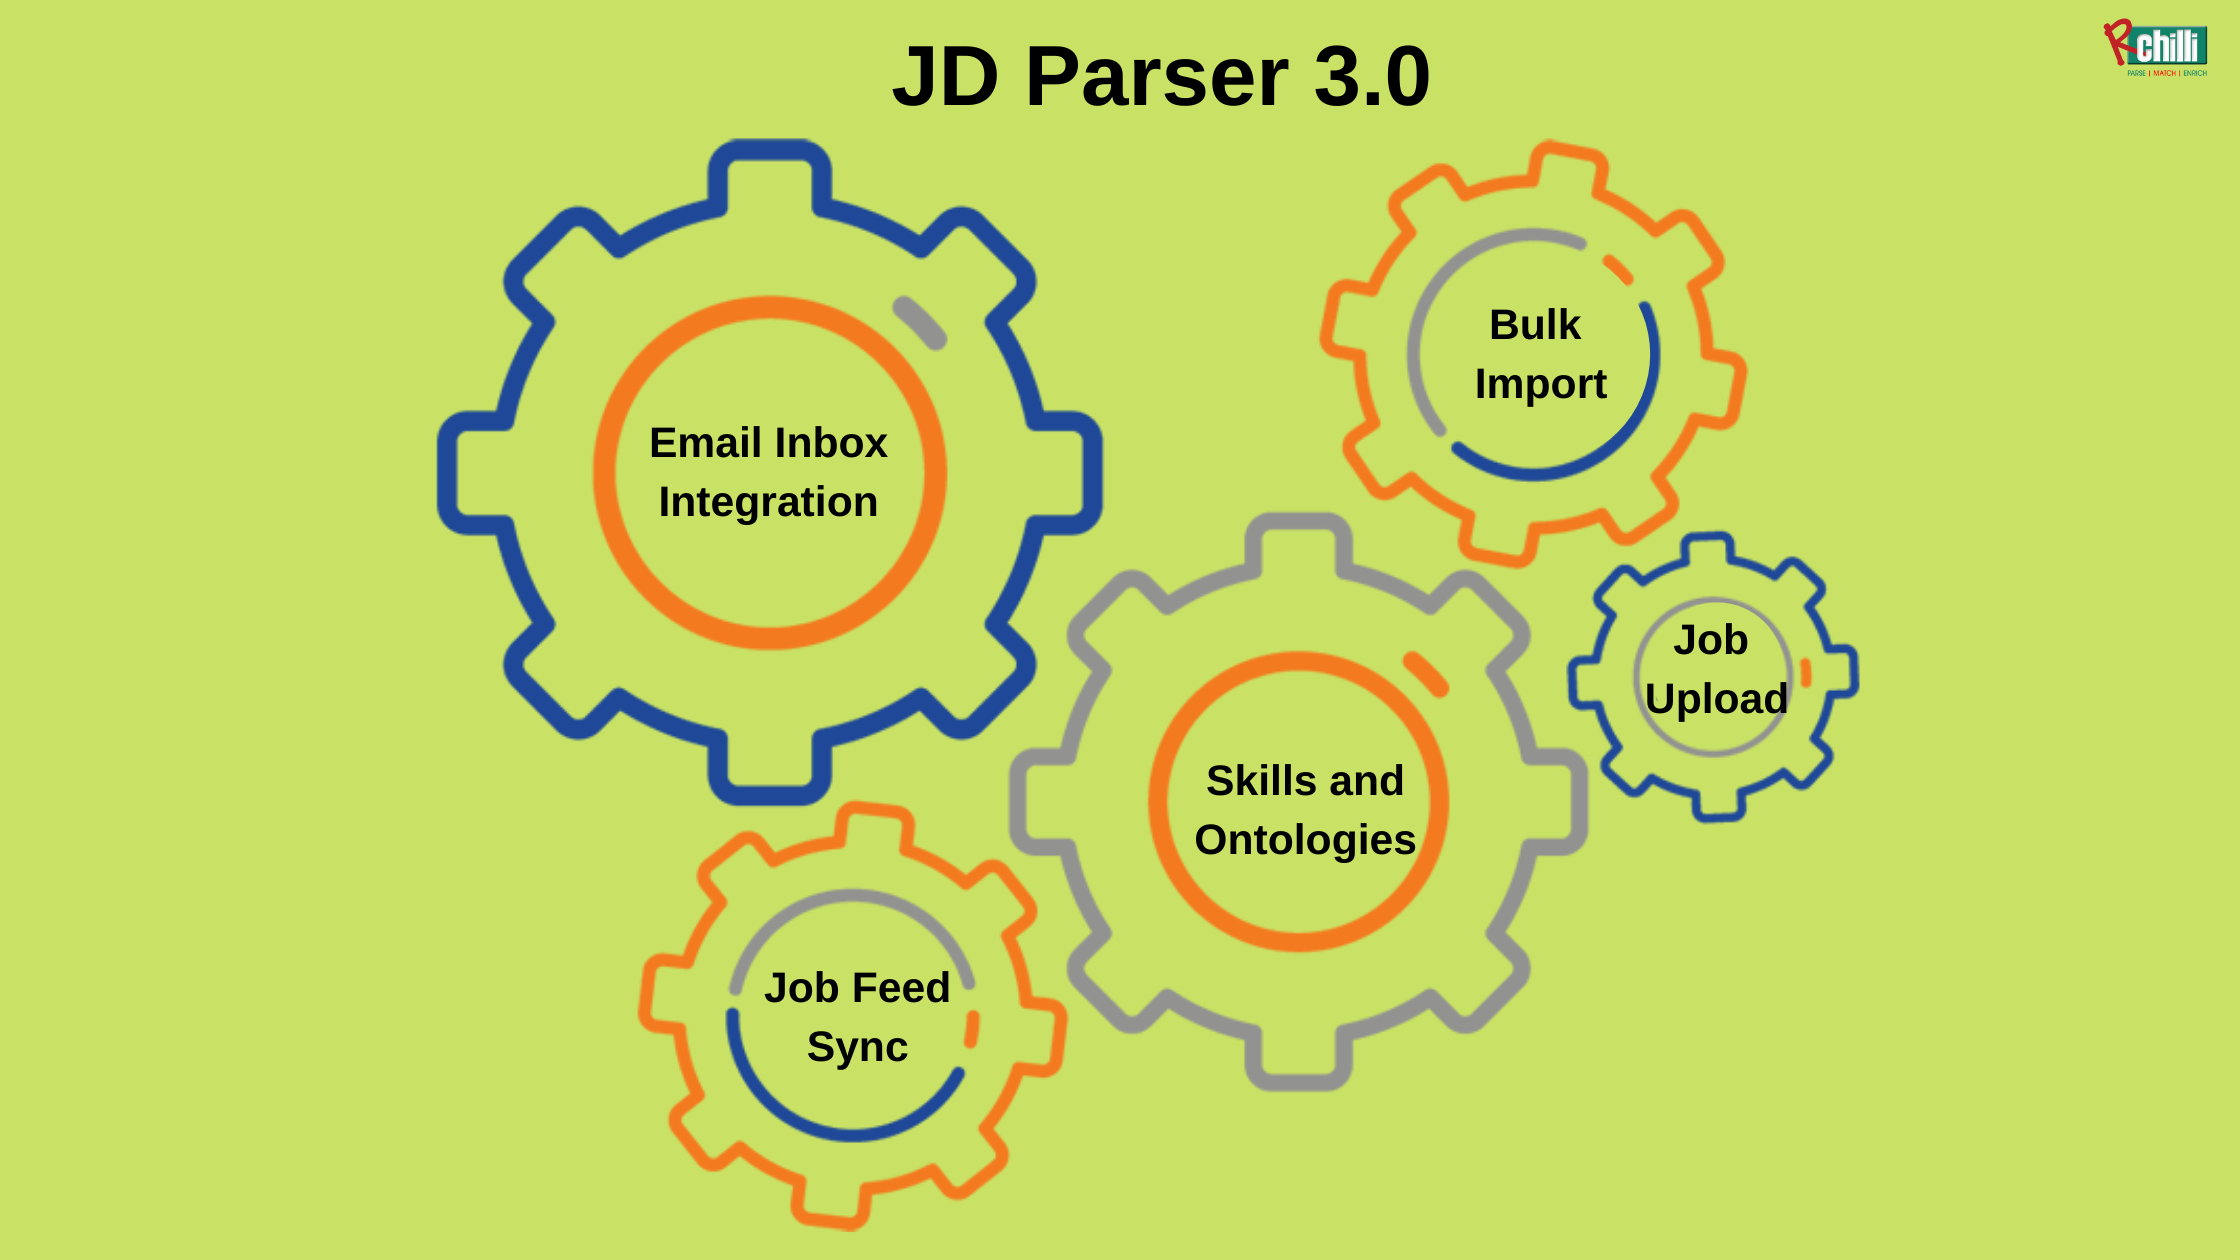 Automate Jobs Processing with JD Parser 3.0